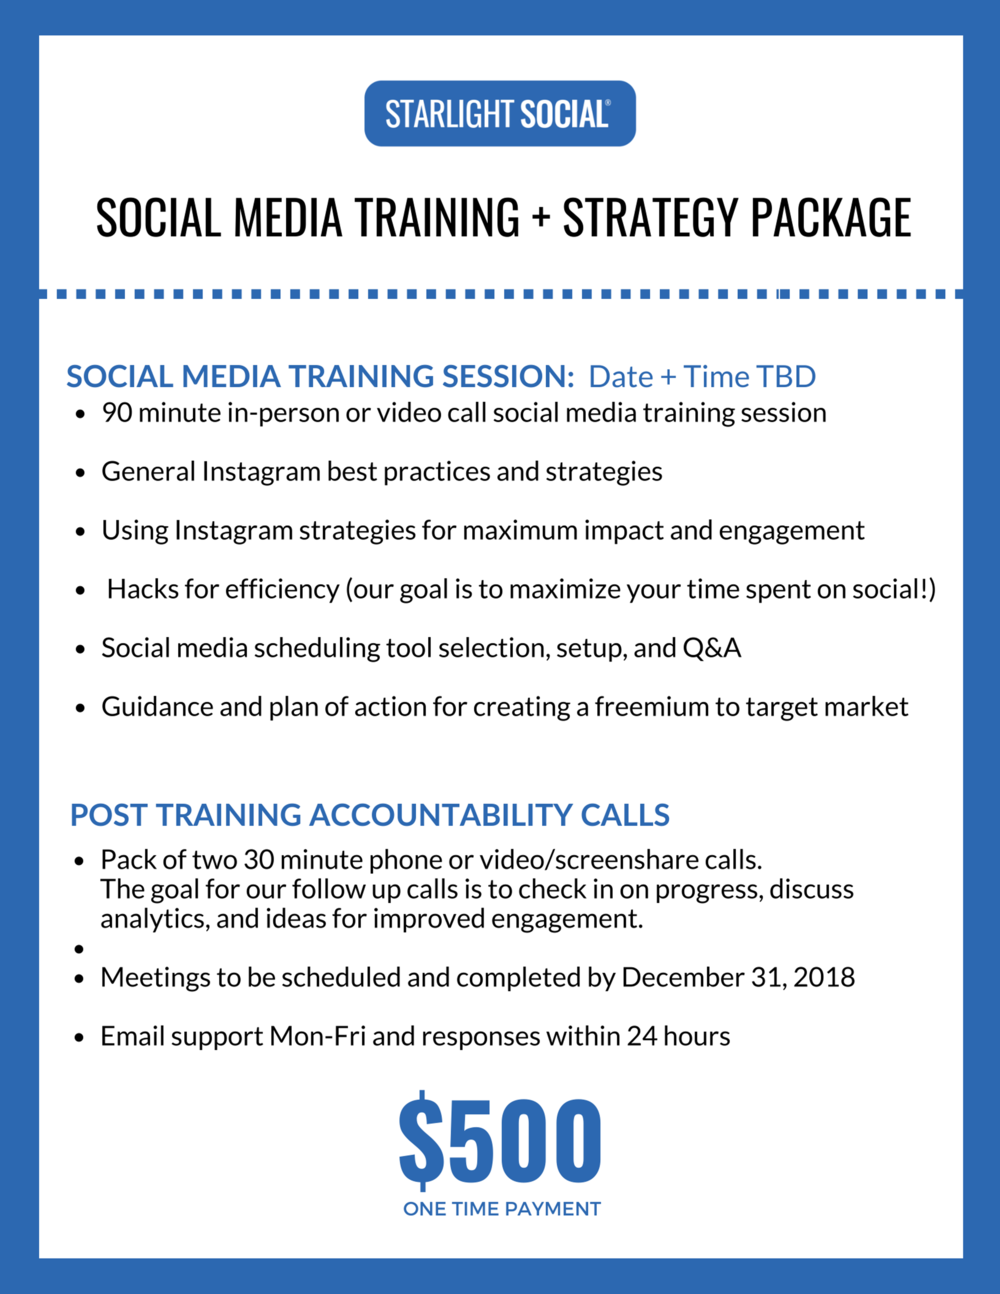 SAMPLE Social Media + Strategy Package.png